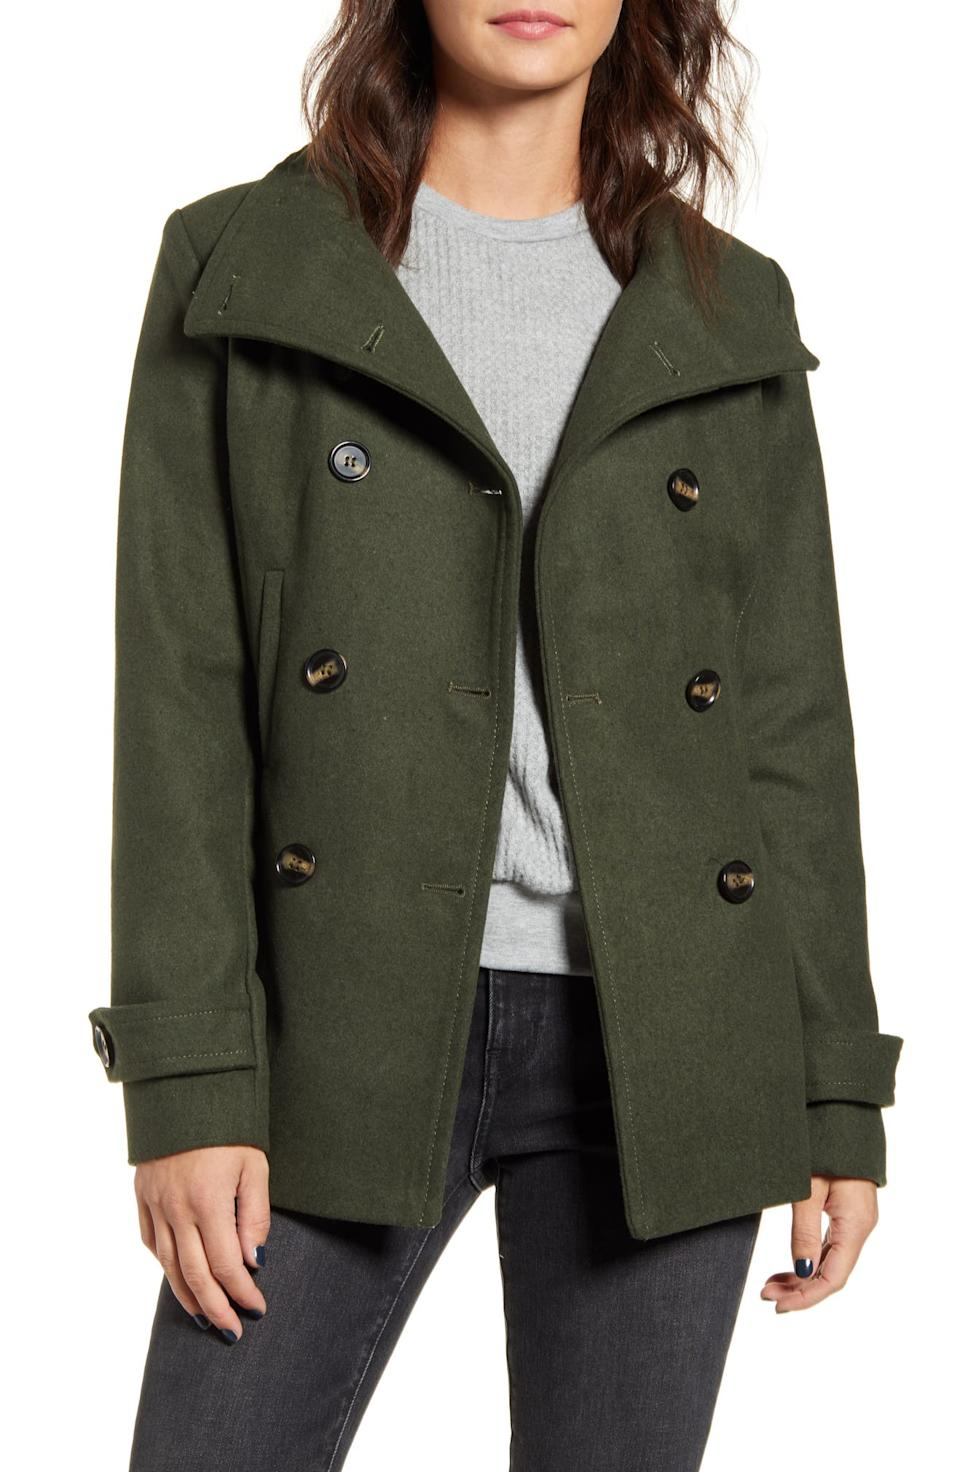 Thread & Supply Double Breasted Peacoat in Olive. Image via Nordstrom.